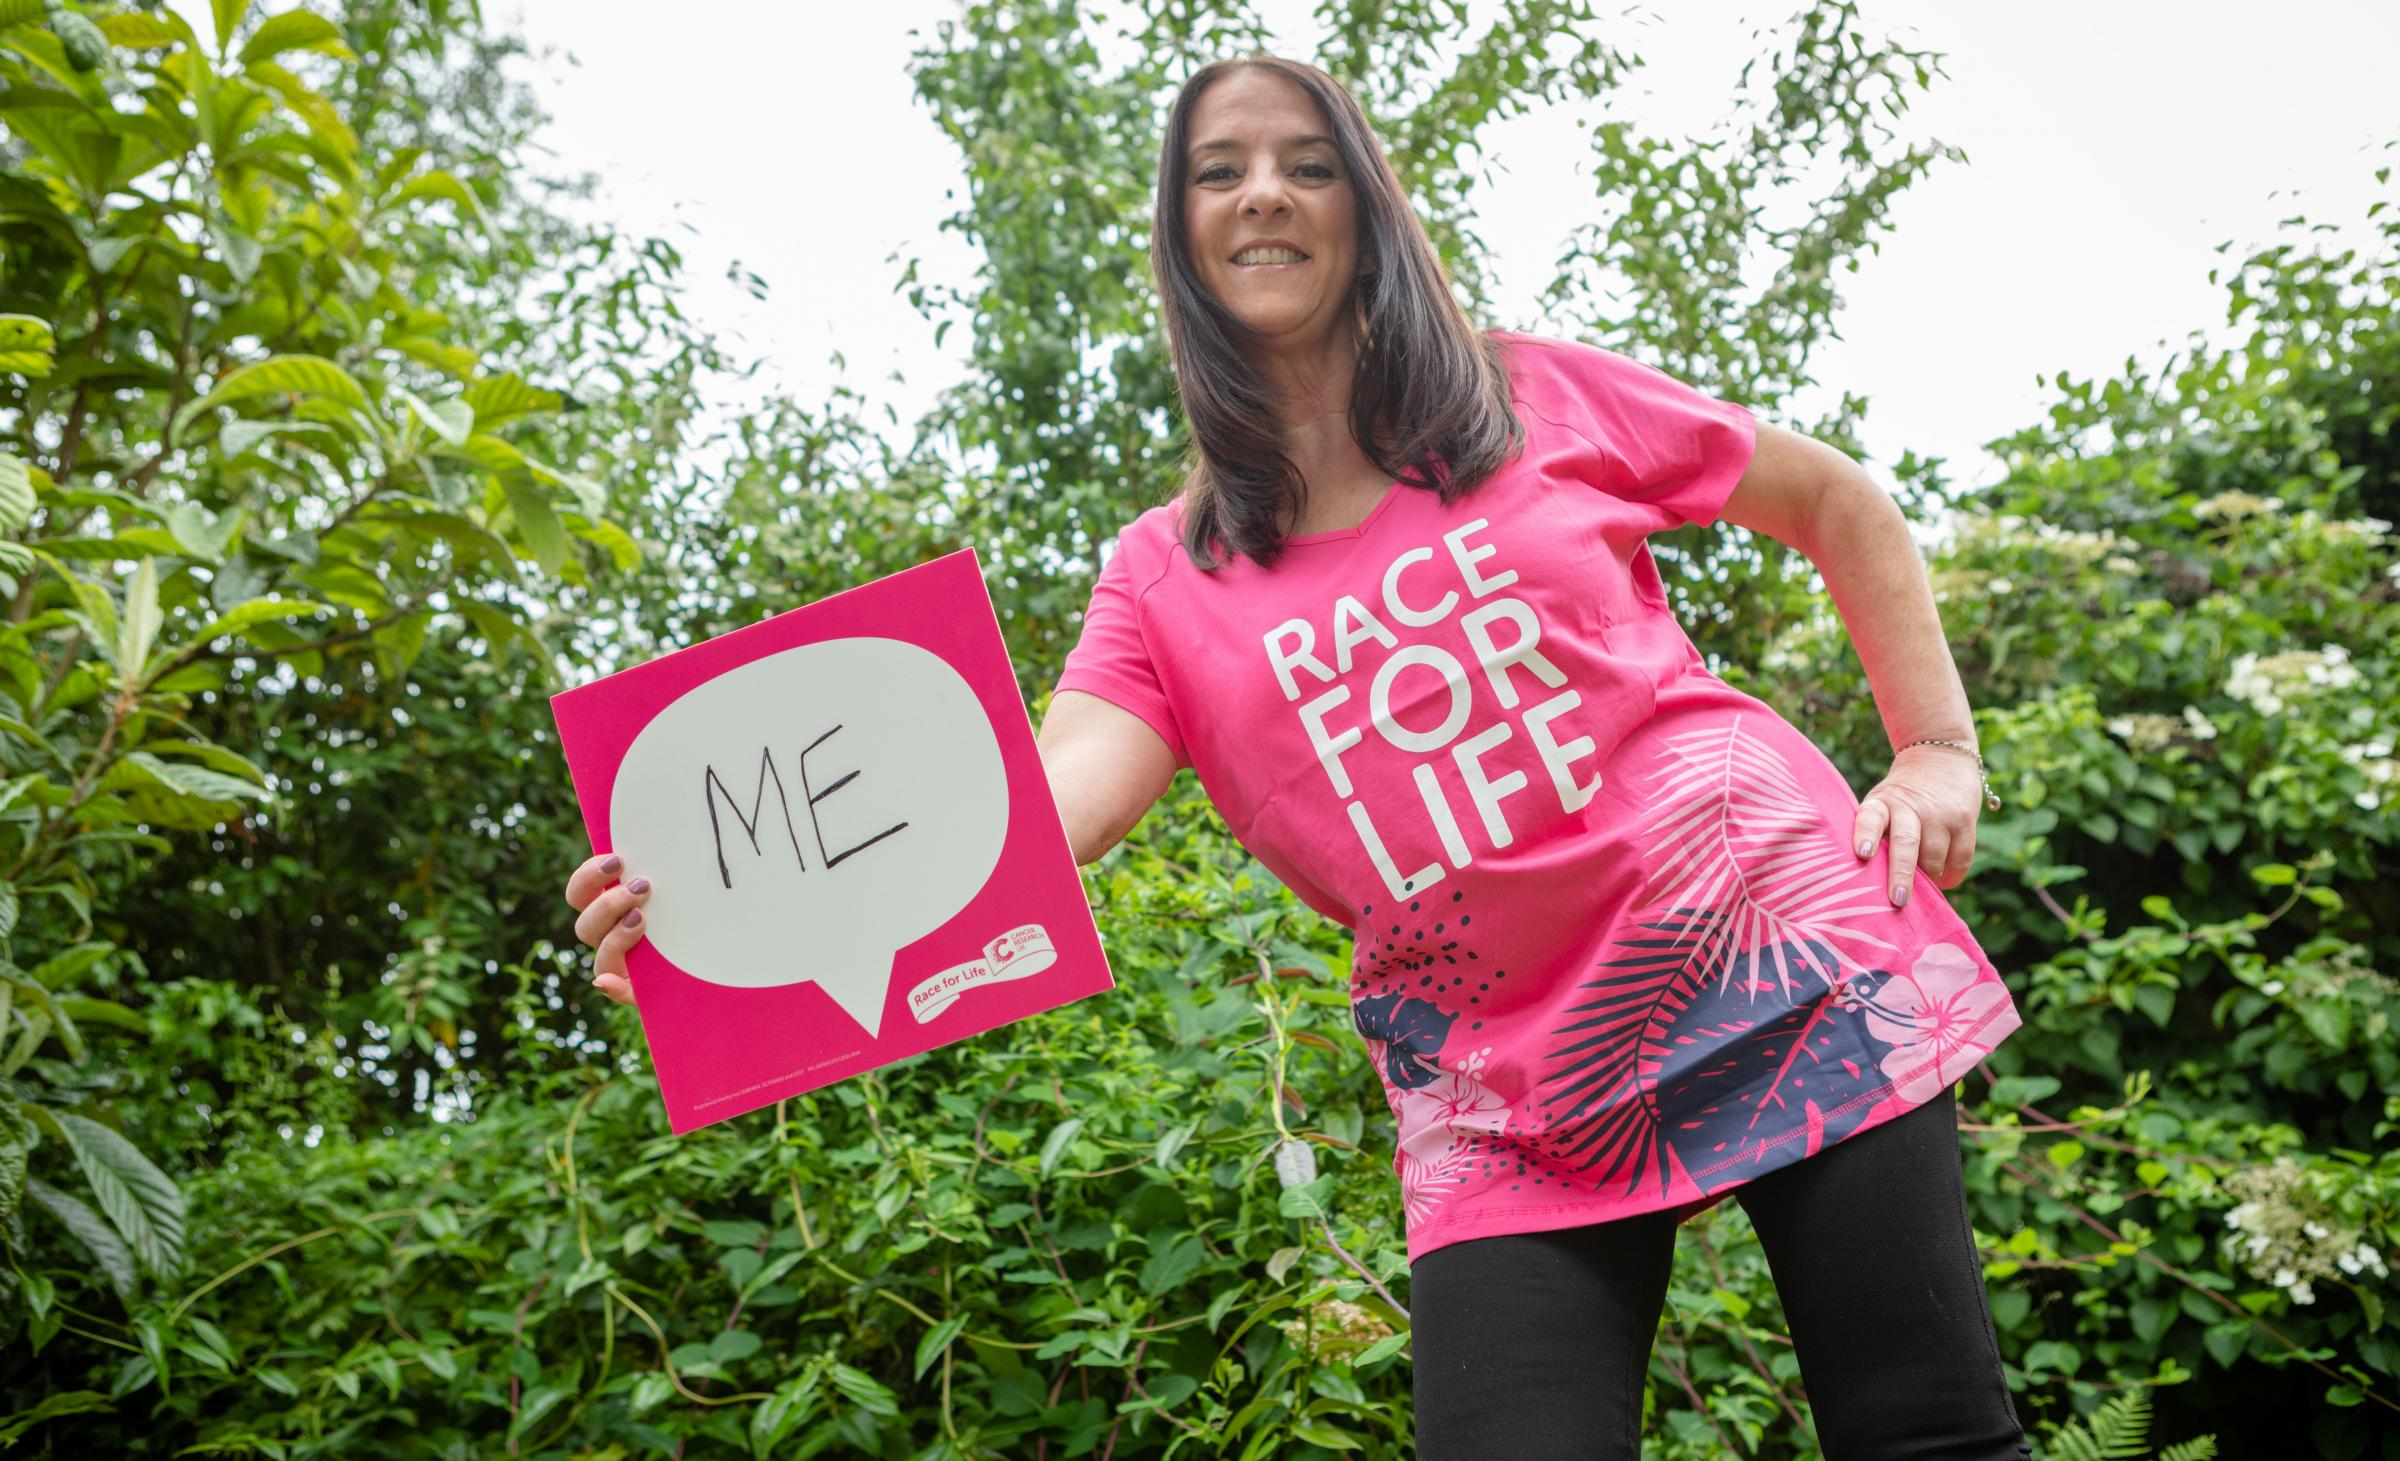 Chester cancer survivor Juana urges others to join her in Race for Life